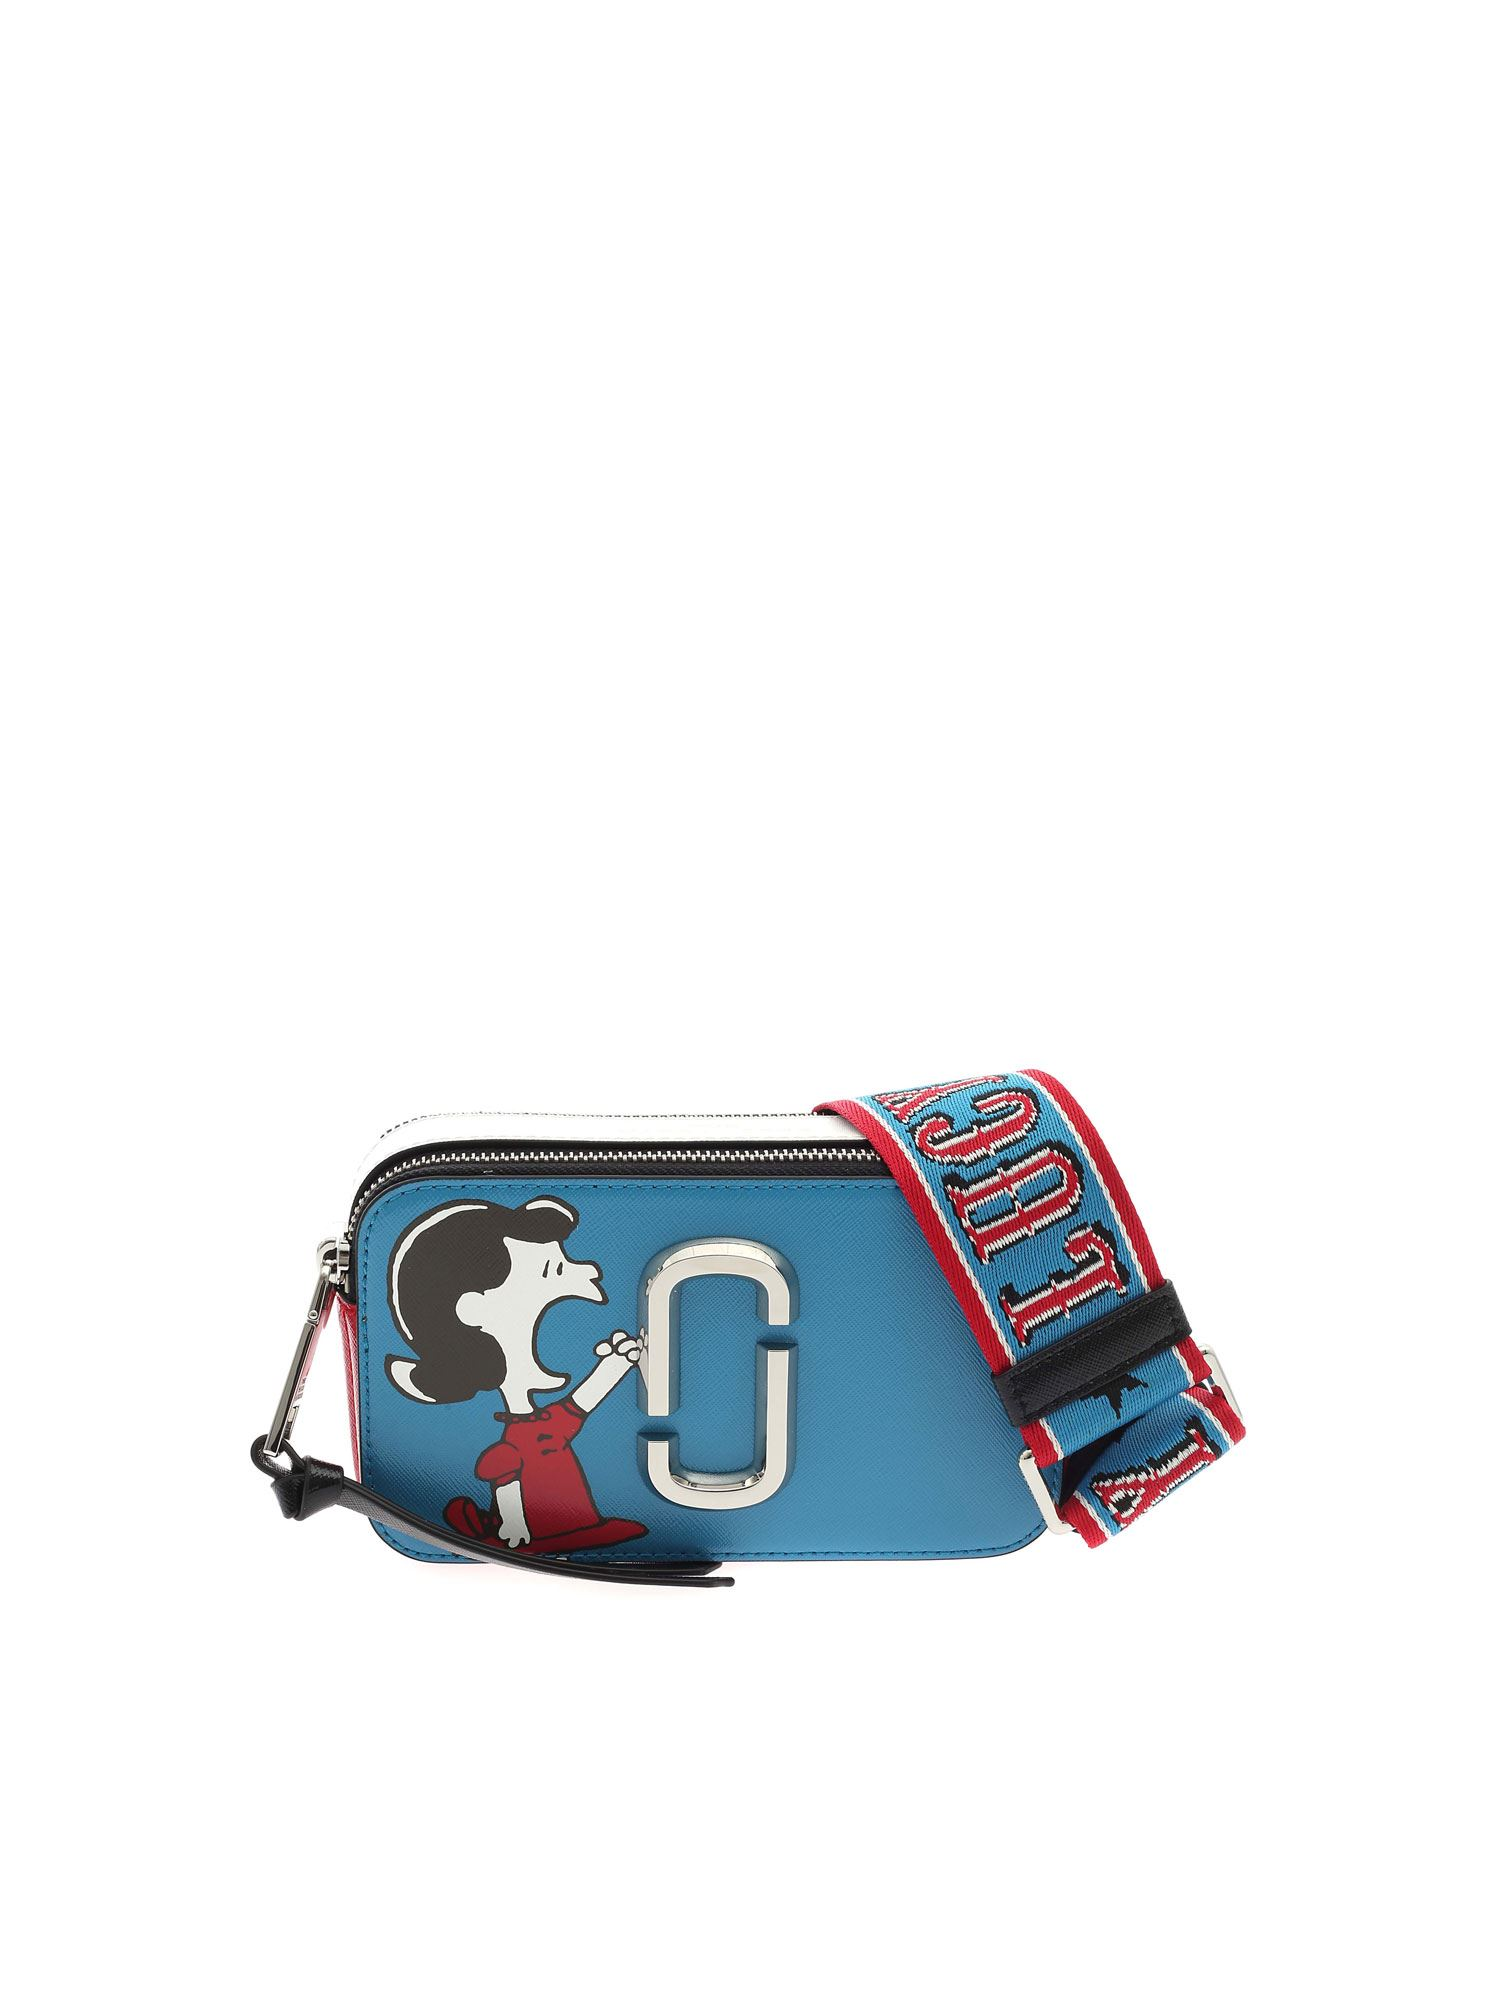 Marc Jacobs PEANUTS BAG IN BLUE WHITE AND RED